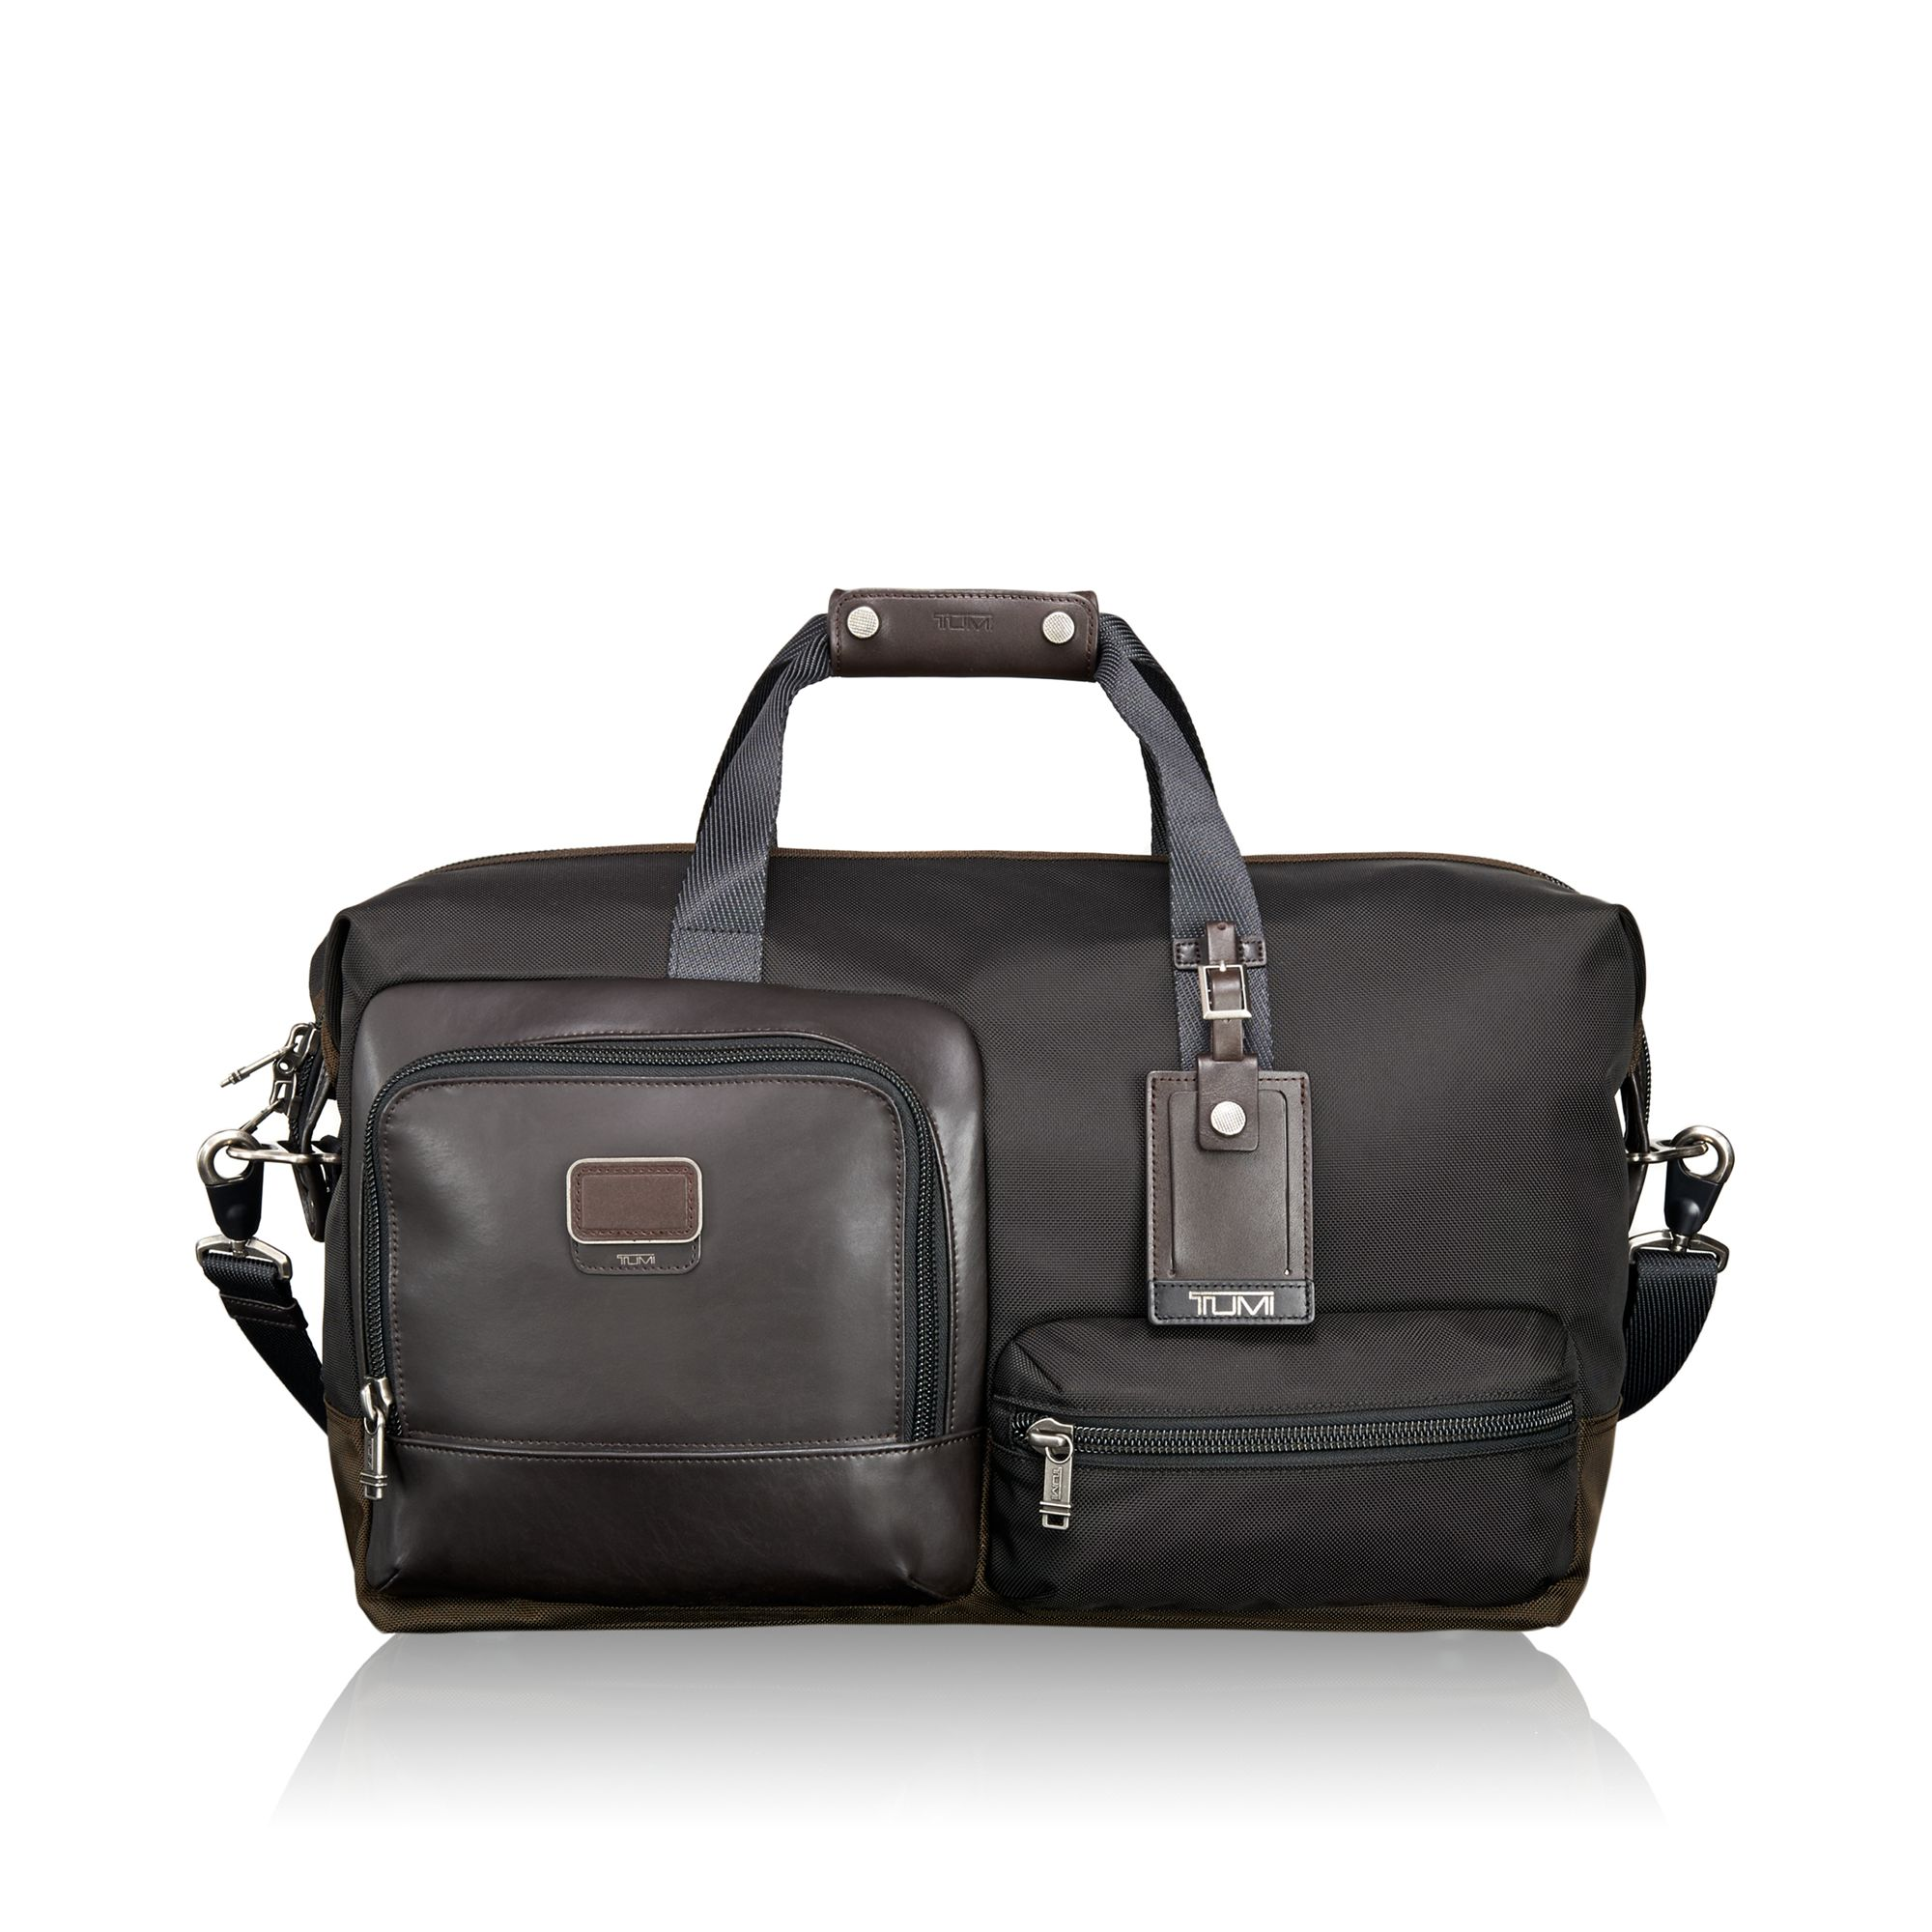 Elegant Tumi Alpha Bravo for Cool Travel Bag Ideas: Tumi Alpha Bravo Tote | Tumi Alpha Bravo Benning Deluxe Messenger | Tumi Alpha Bravo